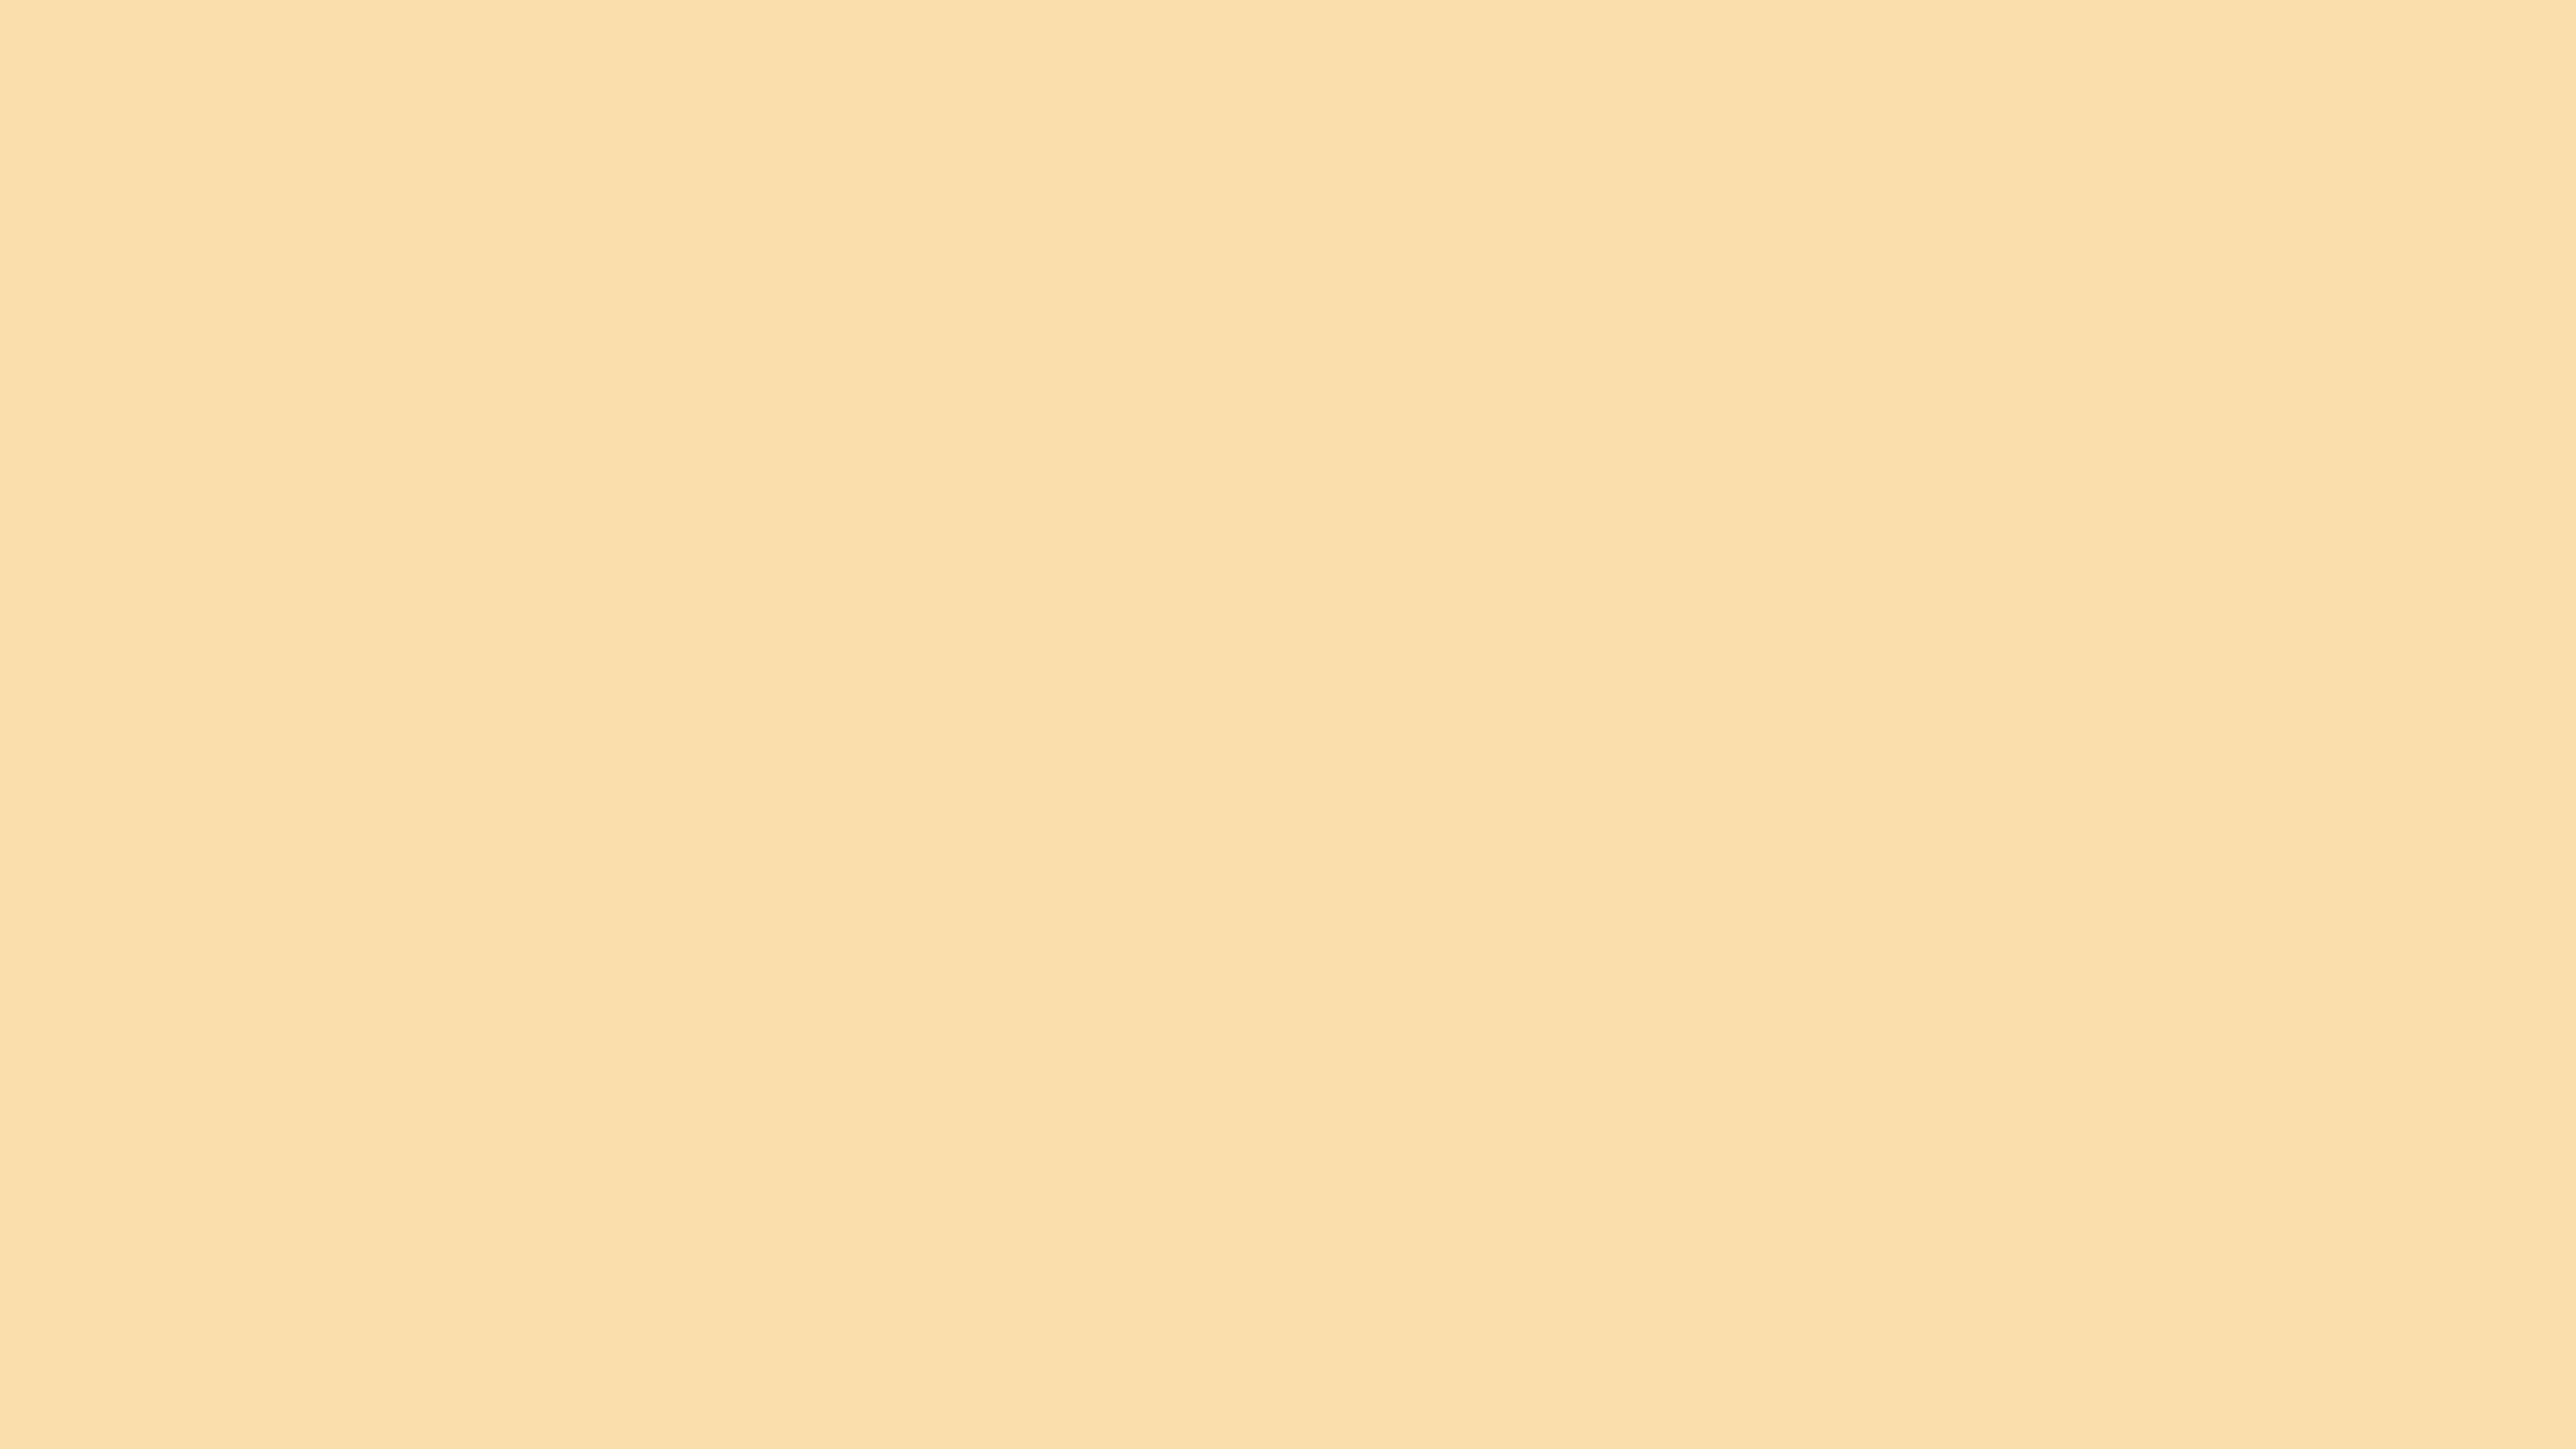 3840x2160 Peach-yellow Solid Color Background